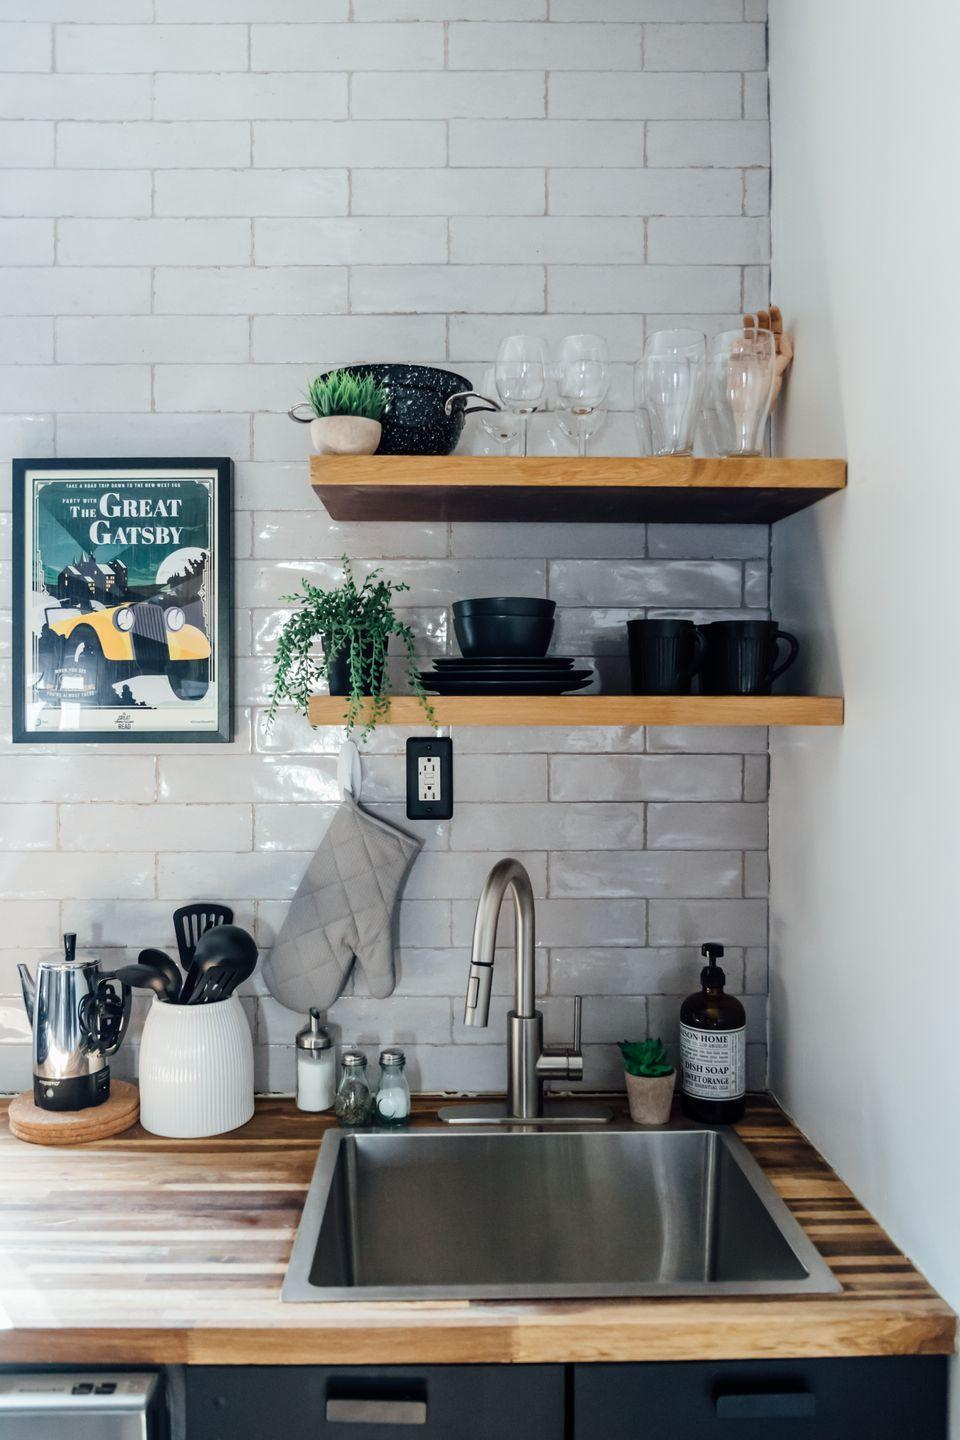 "<p>By adding extra shelves <em>($16, </em><a href=""https://www.amazon.com/Command-Picture-1-Ledge-10-Medium-HOM21S-ES/dp/B01C60CA8Q/"" rel=""nofollow noopener"" target=""_blank"" data-ylk=""slk:amazon.com"" class=""link rapid-noclick-resp""><em>amazon.com</em></a>) for dinnerware, <a href=""https://www.housebeautiful.com/design-inspiration/house-tours/a34609201/shari-francis-jersey-city-home-tour/"" rel=""nofollow noopener"" target=""_blank"" data-ylk=""slk:Shari Francis"" class=""link rapid-noclick-resp"">Shari Francis </a>turns a previously wasted wall into a handy storage spot for dinnertime favorites.</p>"